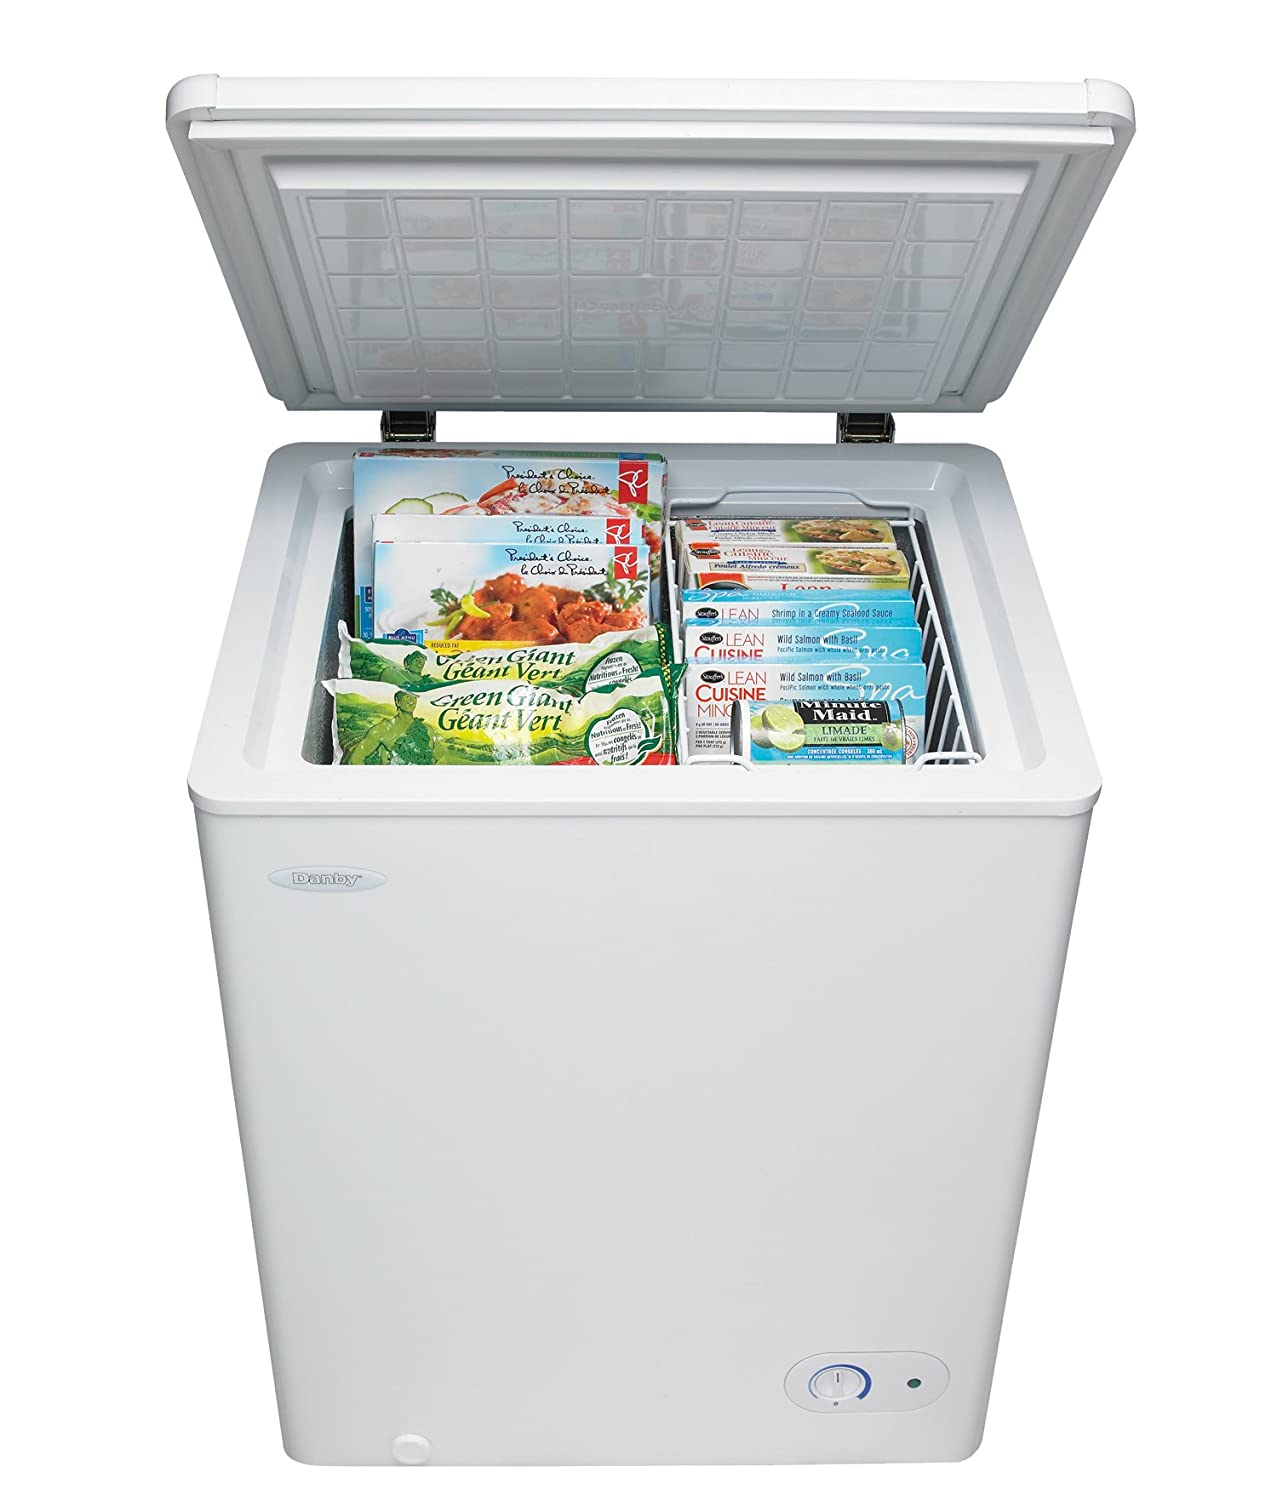 Amazon.com: Danby DCF038A1WDB1-3 Chest Freezer, 3.8 Cubic Feet ...